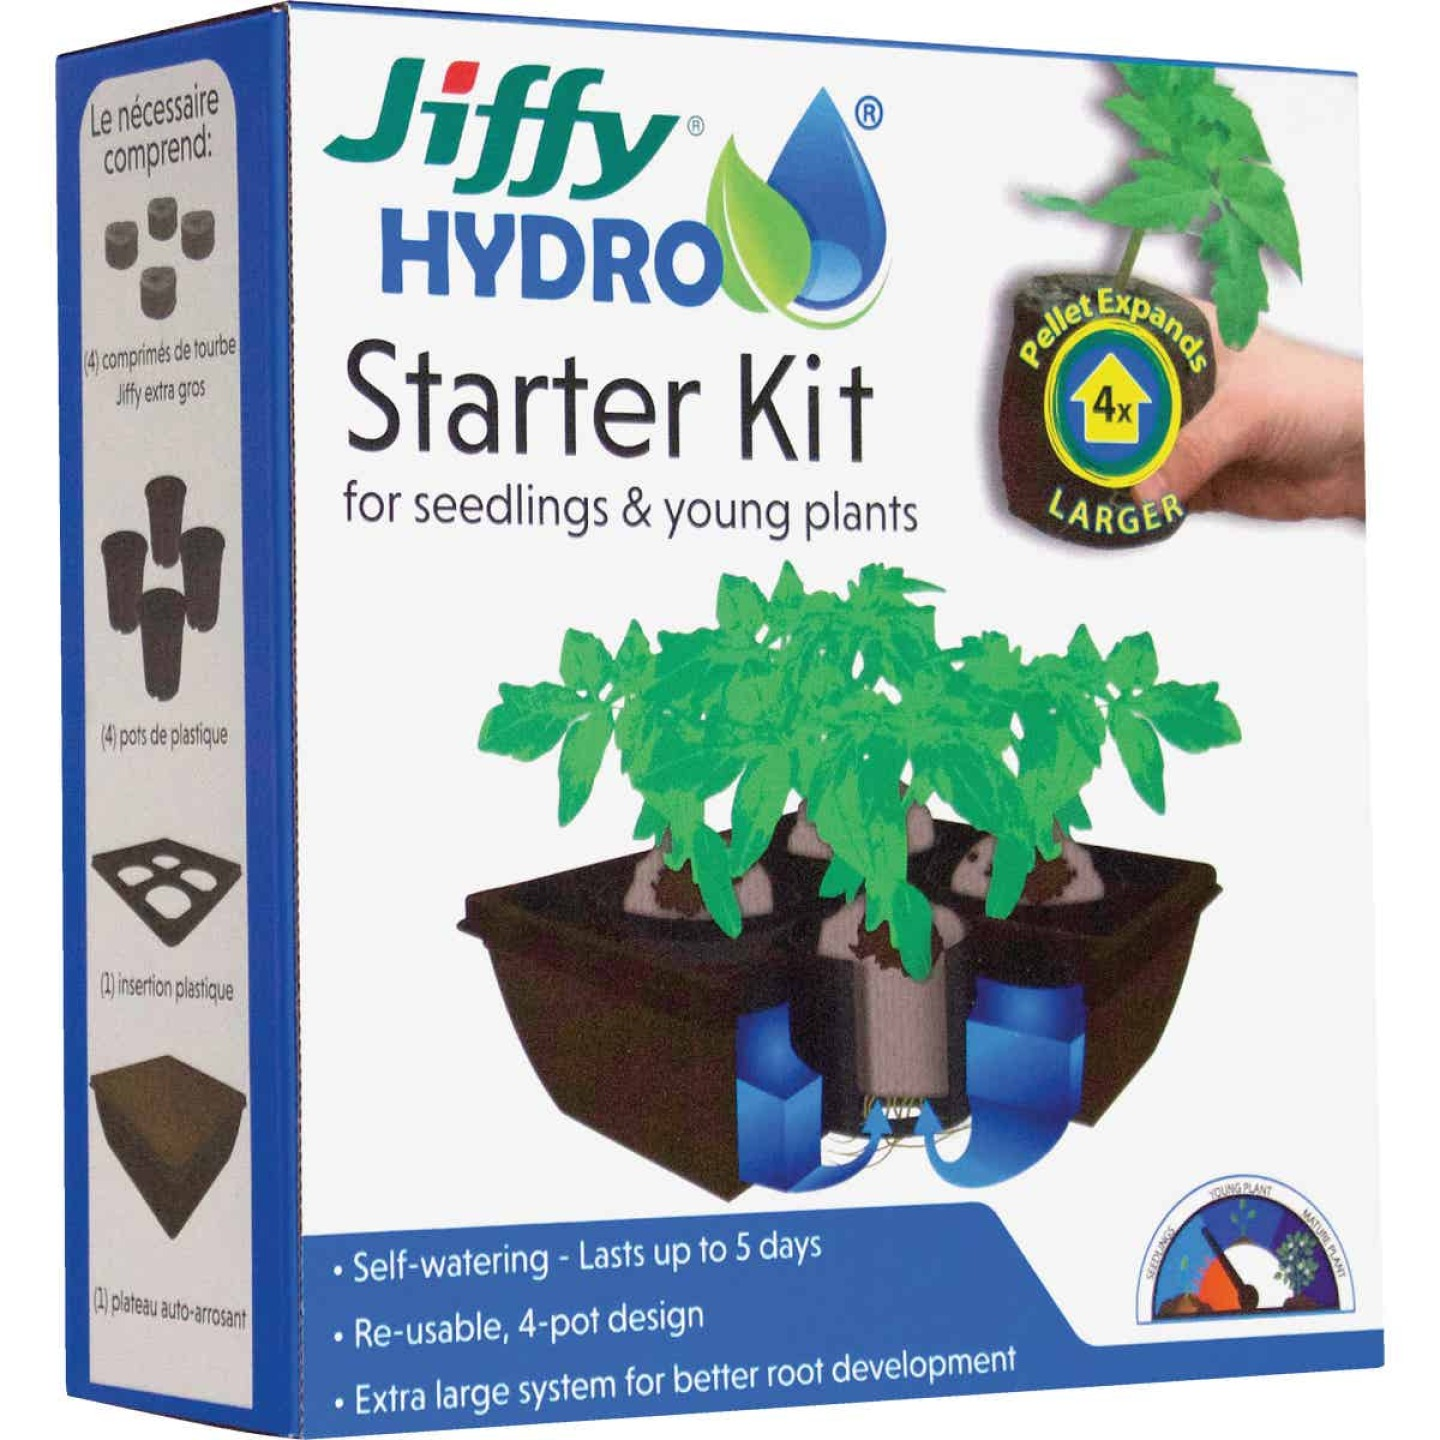 Jiffy Hydro 4-Cell Seedling Hydroponic Starter Kit Image 1